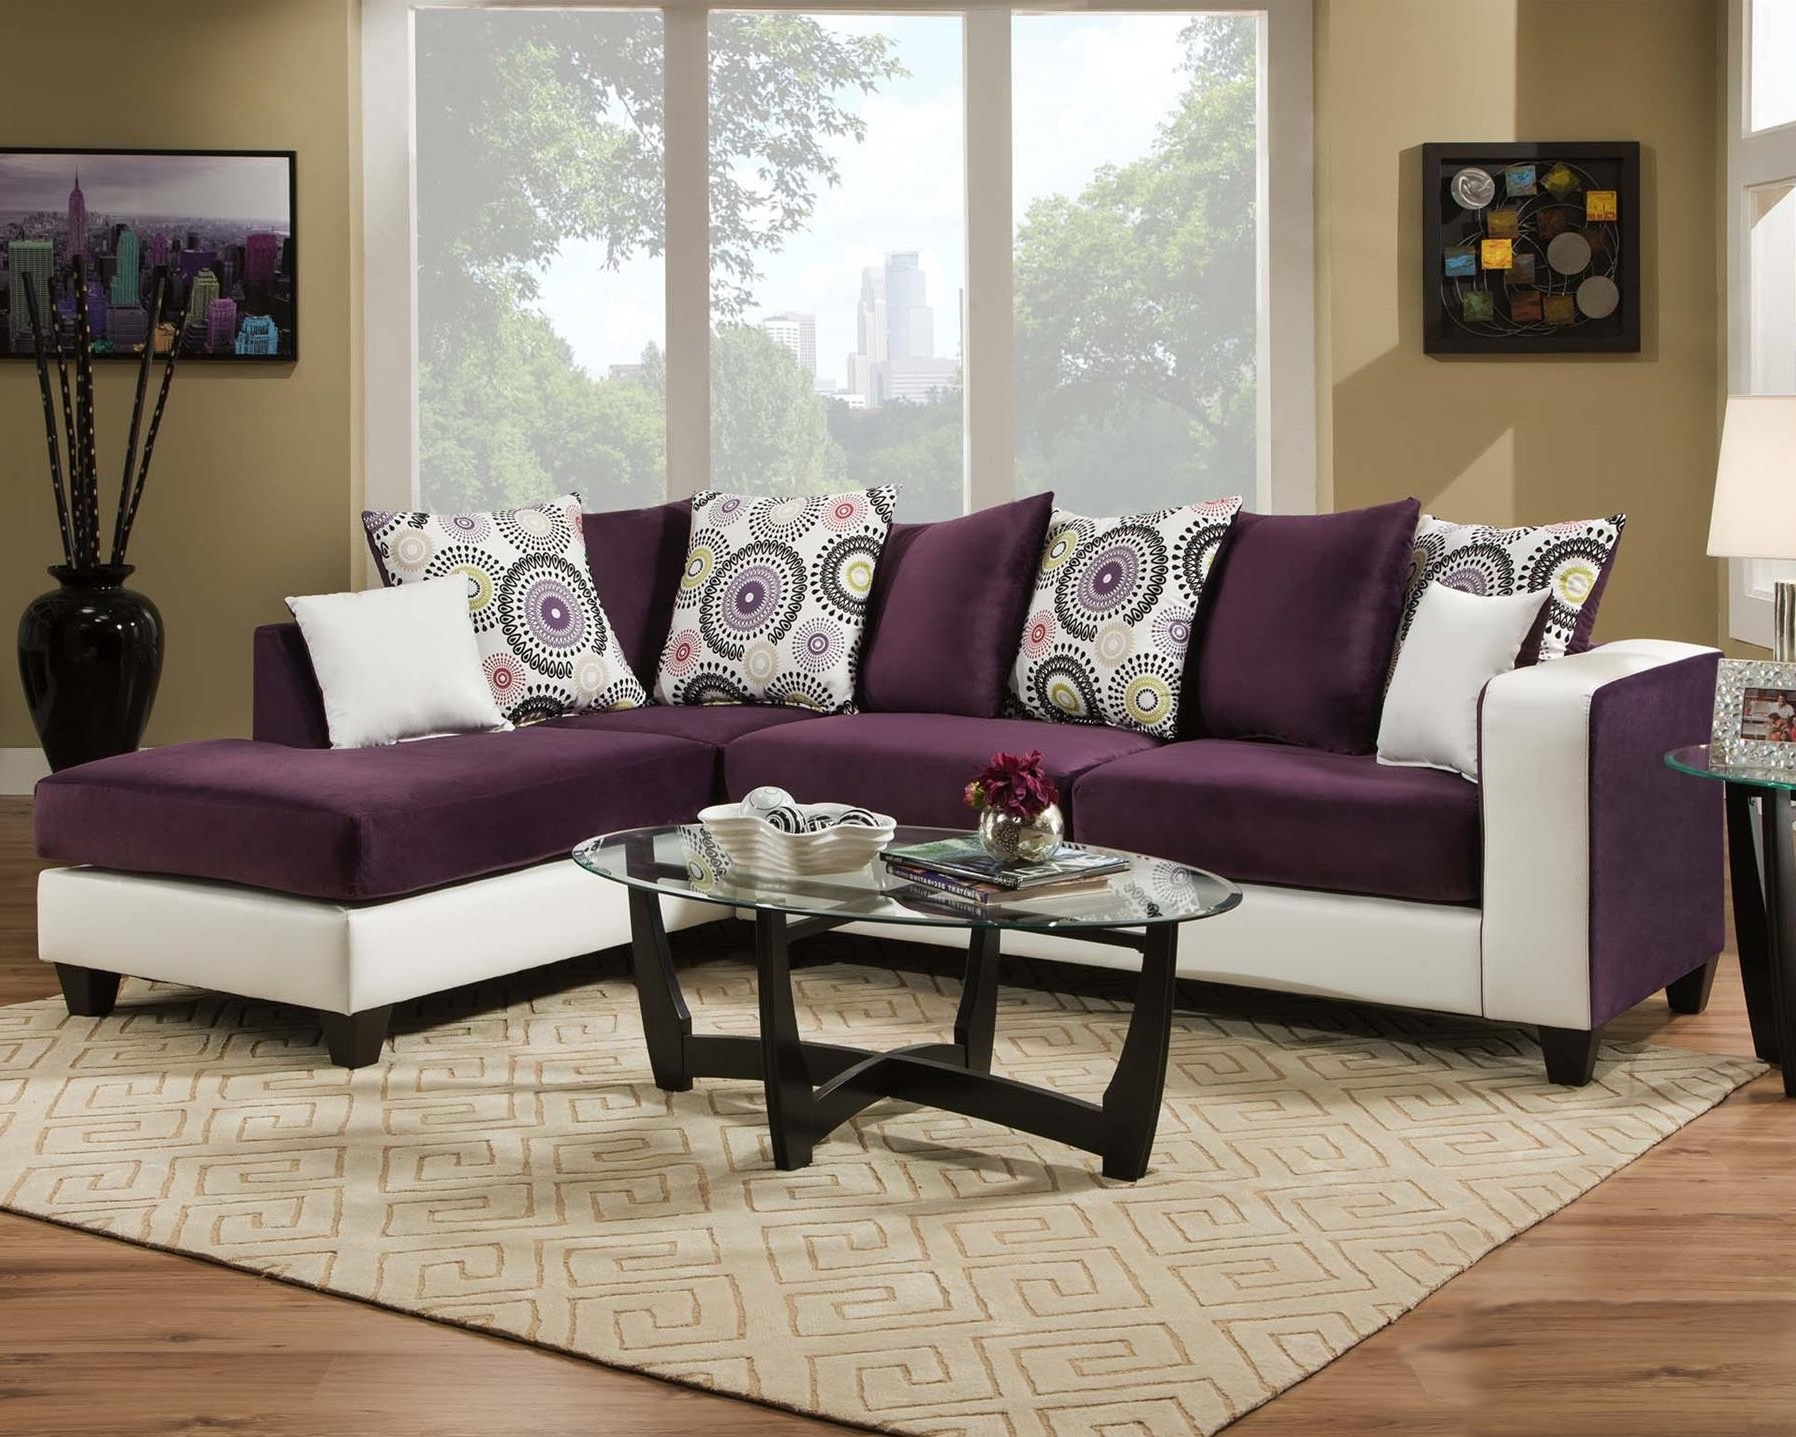 Well Known Dallas Texas Sectional Sofas Intended For Delta : Discount Furniture Online Store, Discounted Furniture In (Gallery 10 of 20)